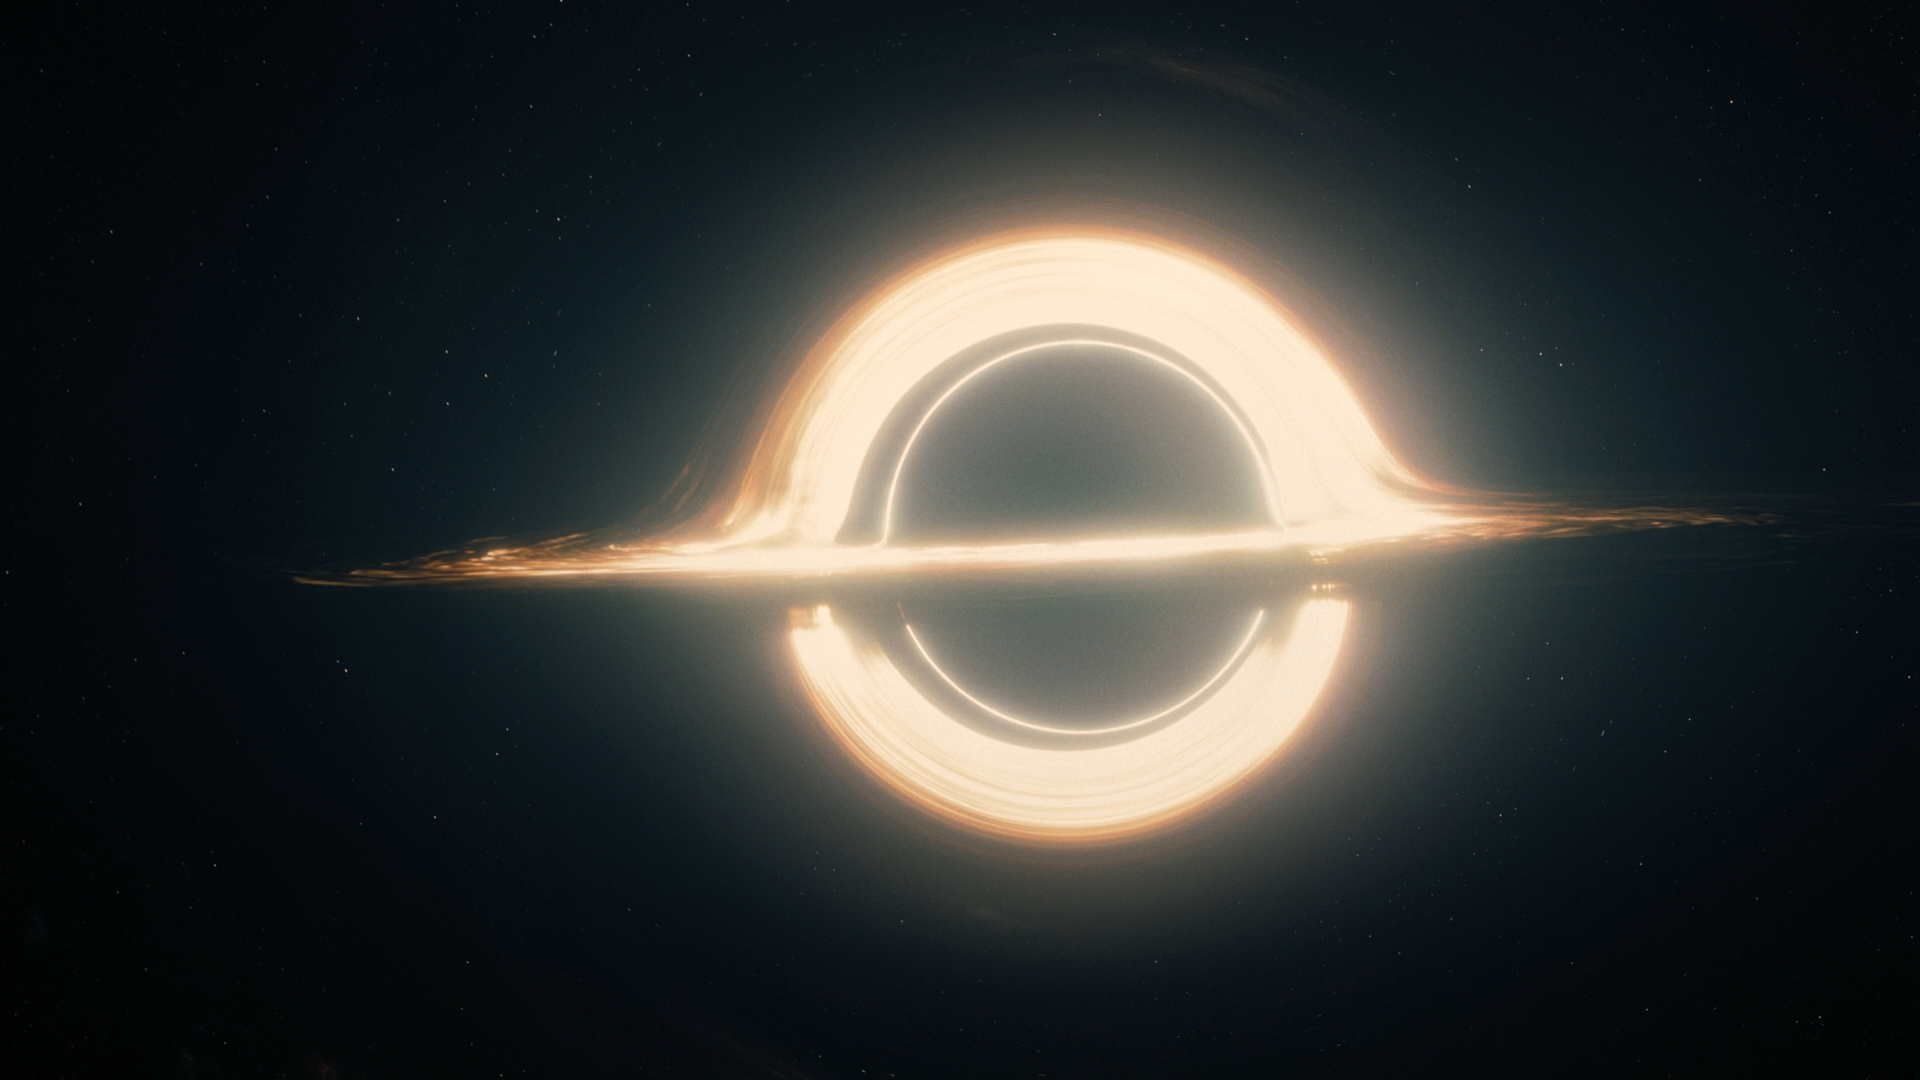 In The Movie Intersteller What We See In This Scene Is Actually Not A Real Black Hole But A Computer Generated Image Black Hole Wallpaper Interstellar Black Hole